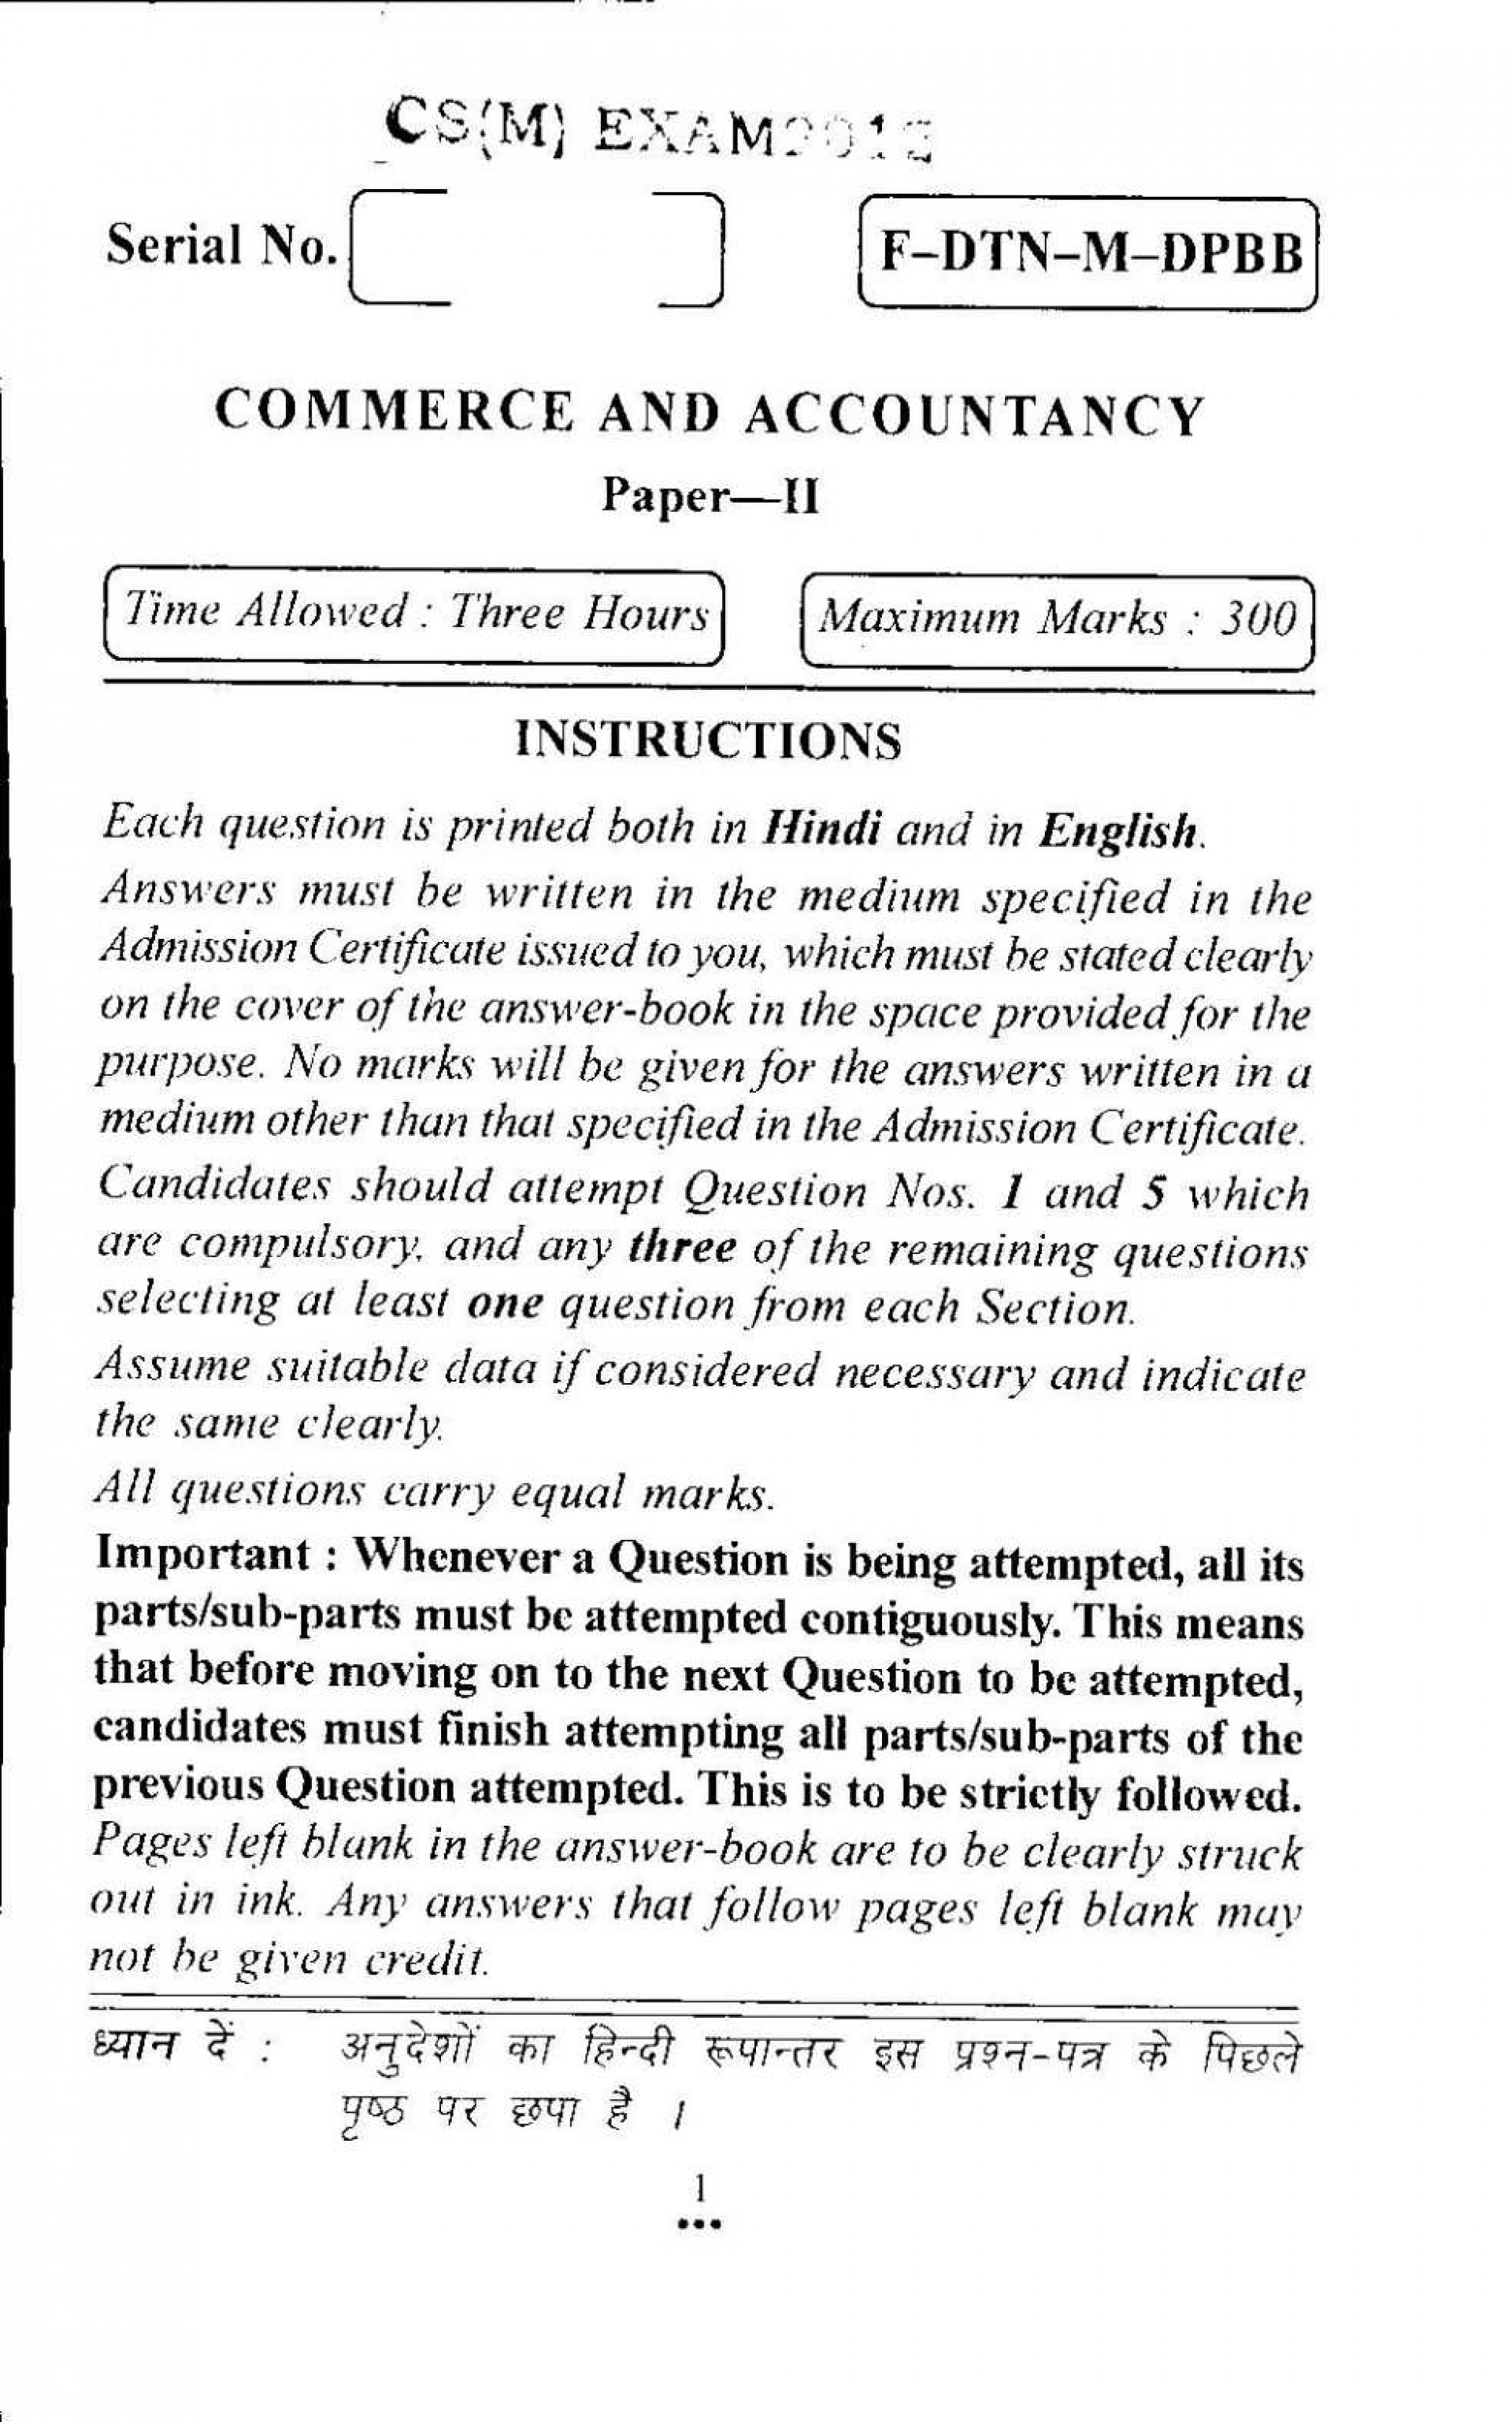 009 Essay Example Civil Services Examination Commerce And Accountancy Paper Ii Previous Years Que Racism Fantastic Argumentative Topics Examples 1920